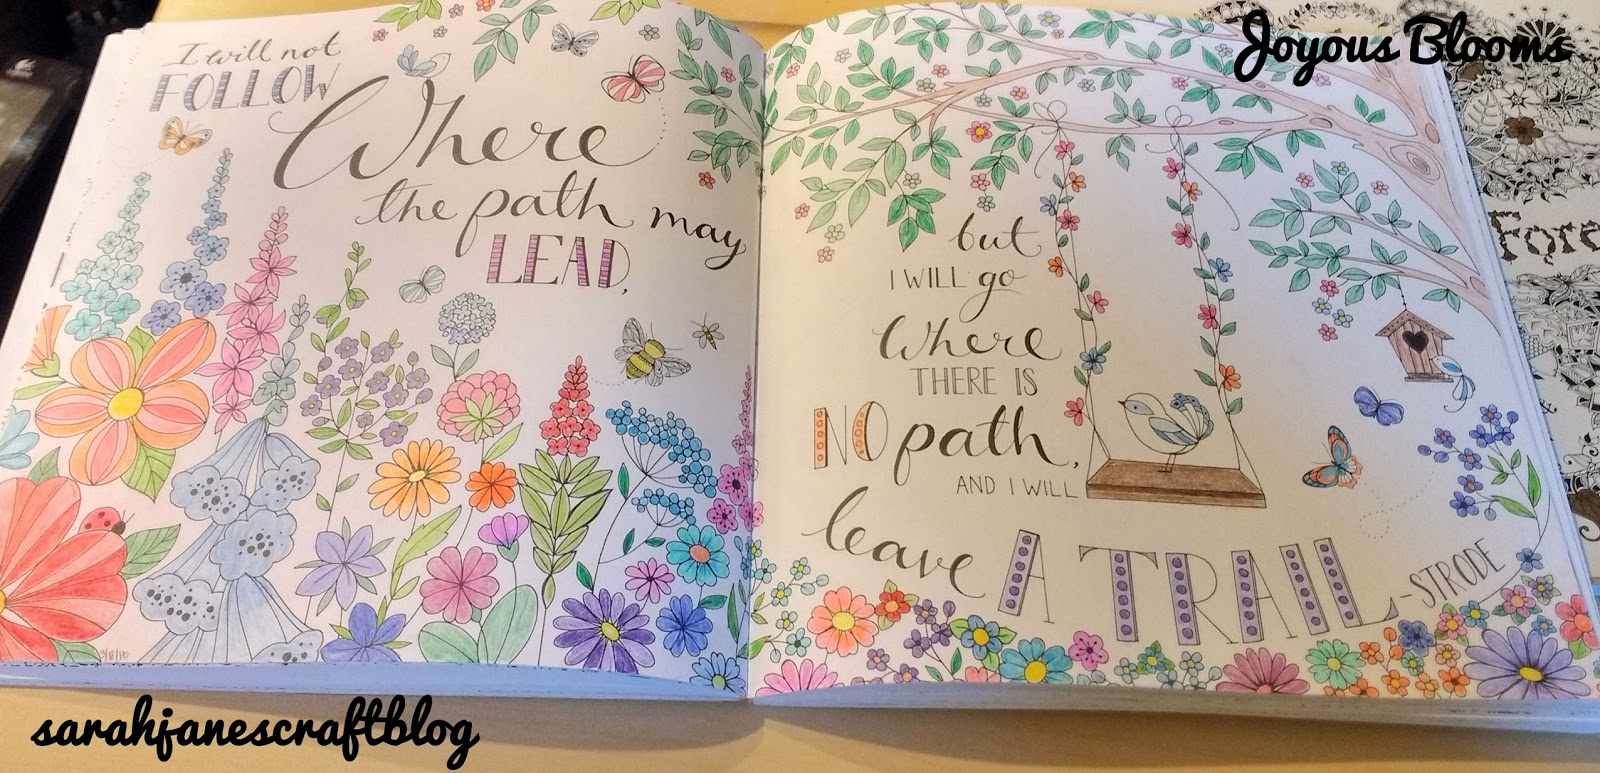 My Two Favorites Right Now Are Joyous Blooms By Eleri Fowler Pictured Above She Also Just Released A Mother Heart That Has Motherhood Theme And